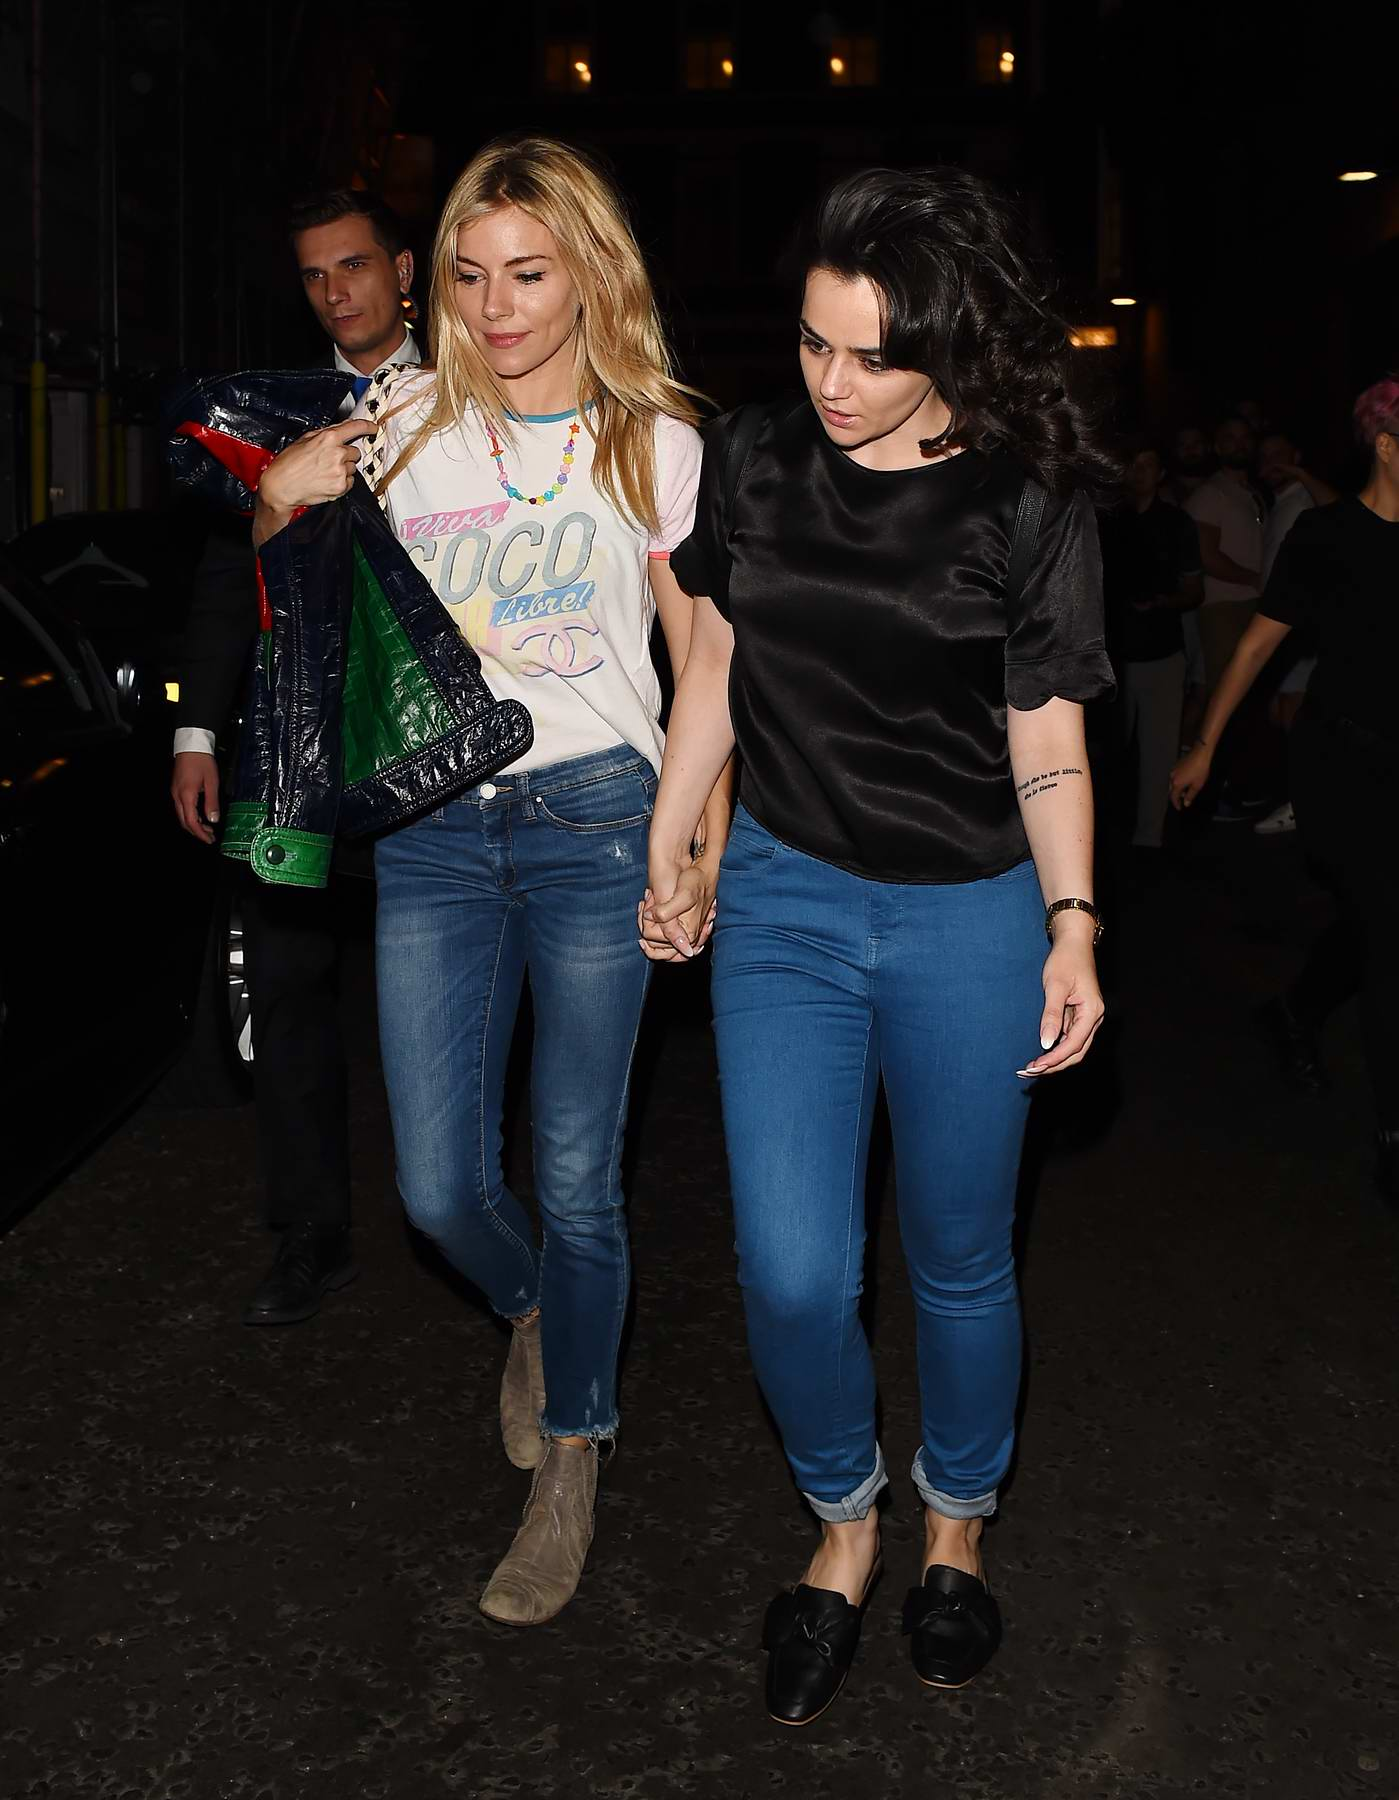 Sienna Miller leaving after performing in Cat on a Hot Tin Roof at Apollo Theatre in London